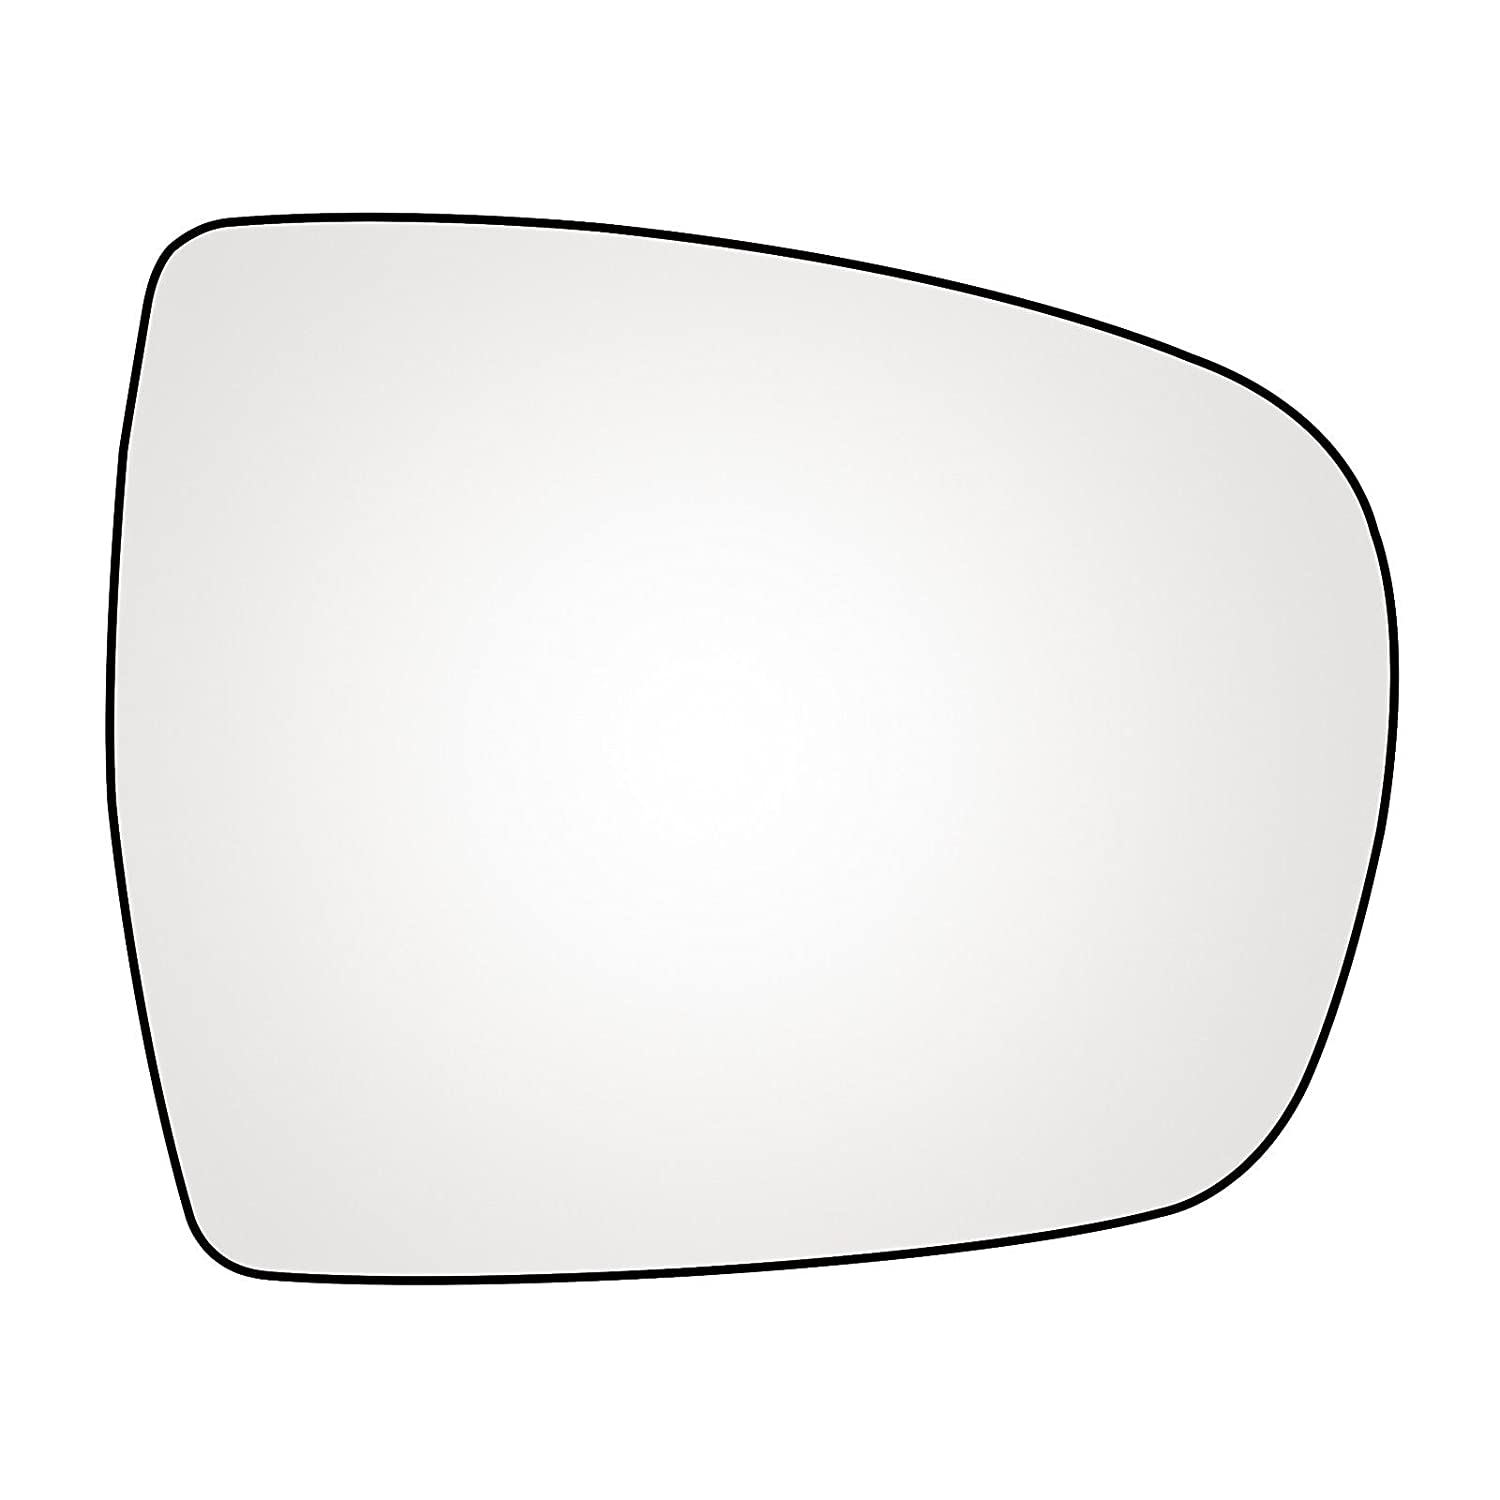 MASO Right Driver Side HEATED WING DOOR MIRROR GLASS